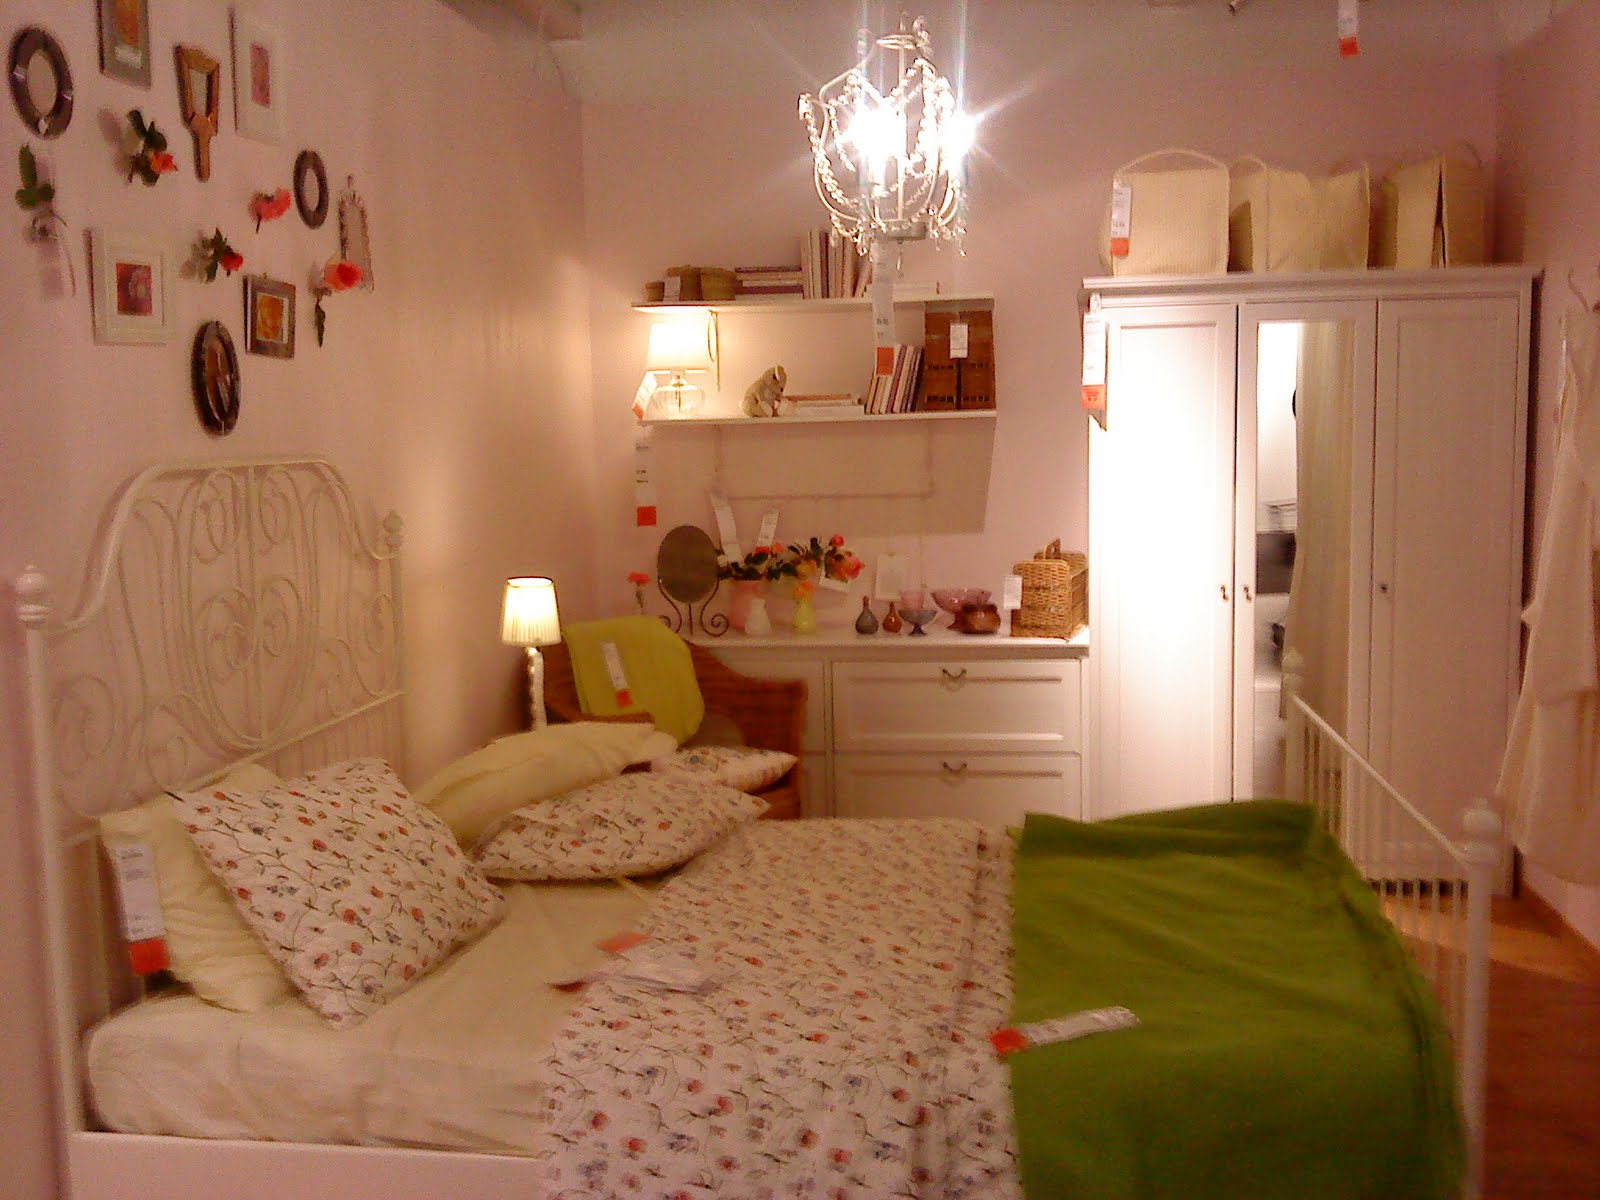 slaapkamer inspiratie on Pinterest  Ikea, Google and Ikea Bedroom